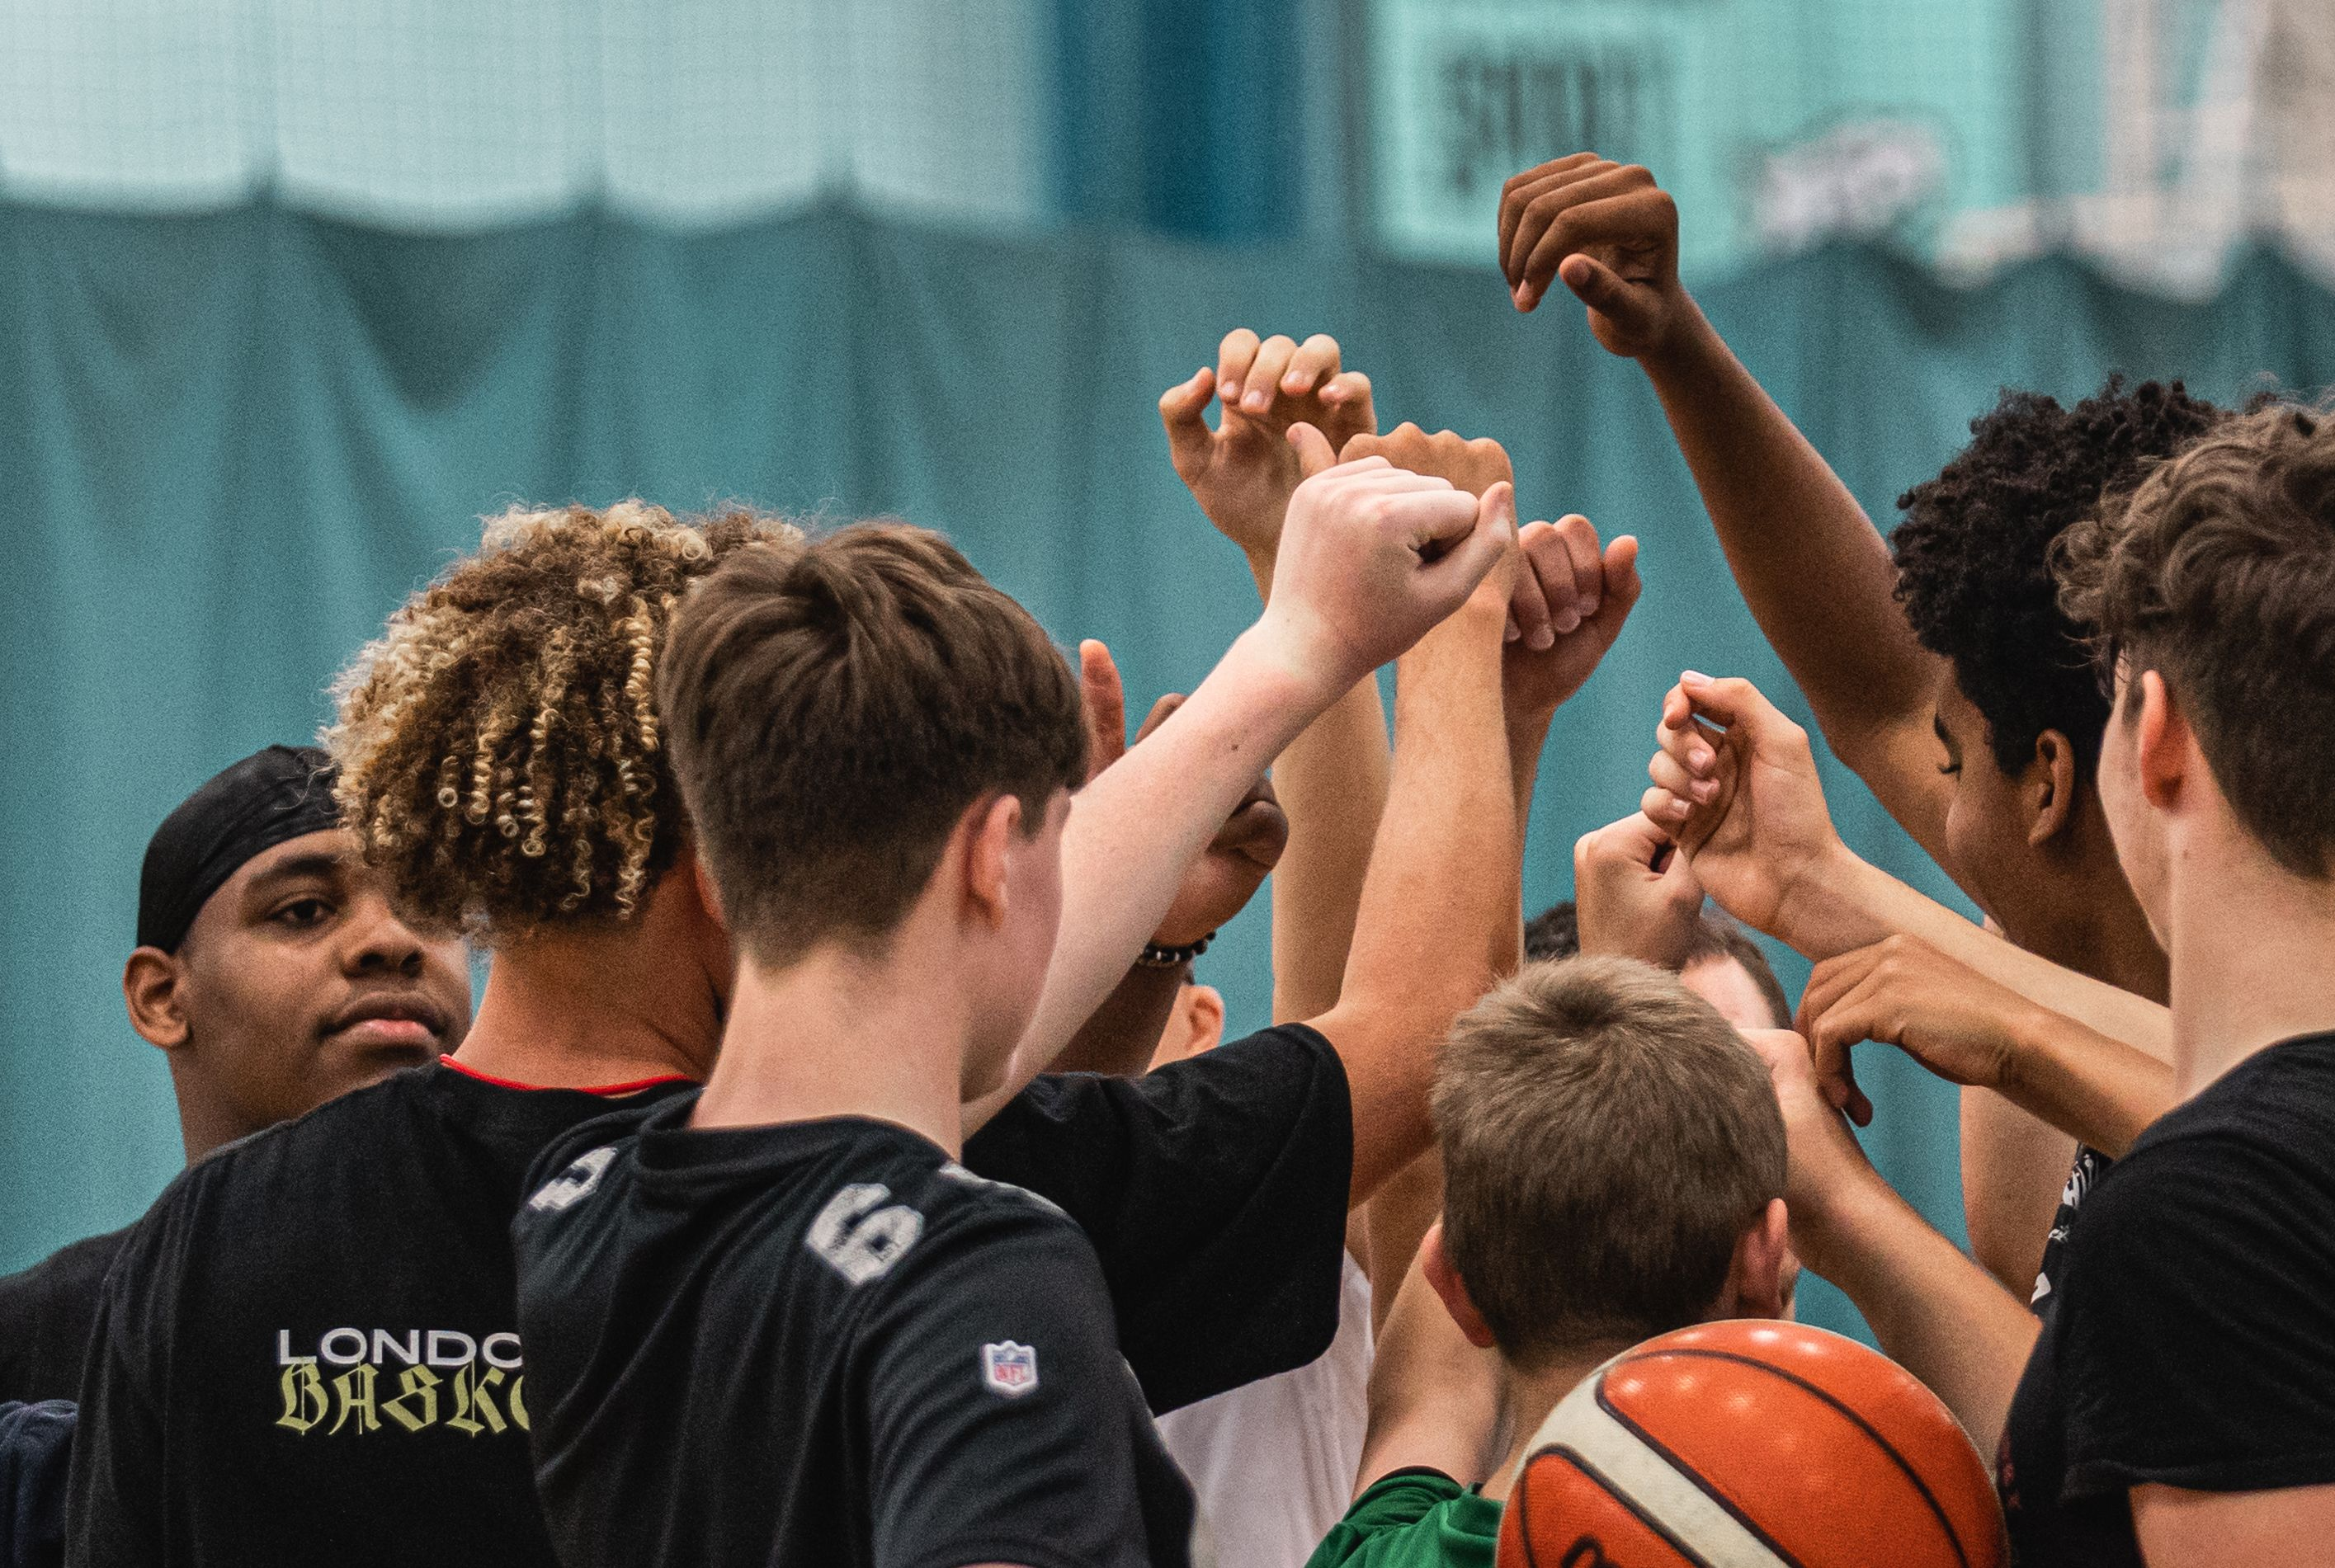 Looking ahead to this weekend's NBL games